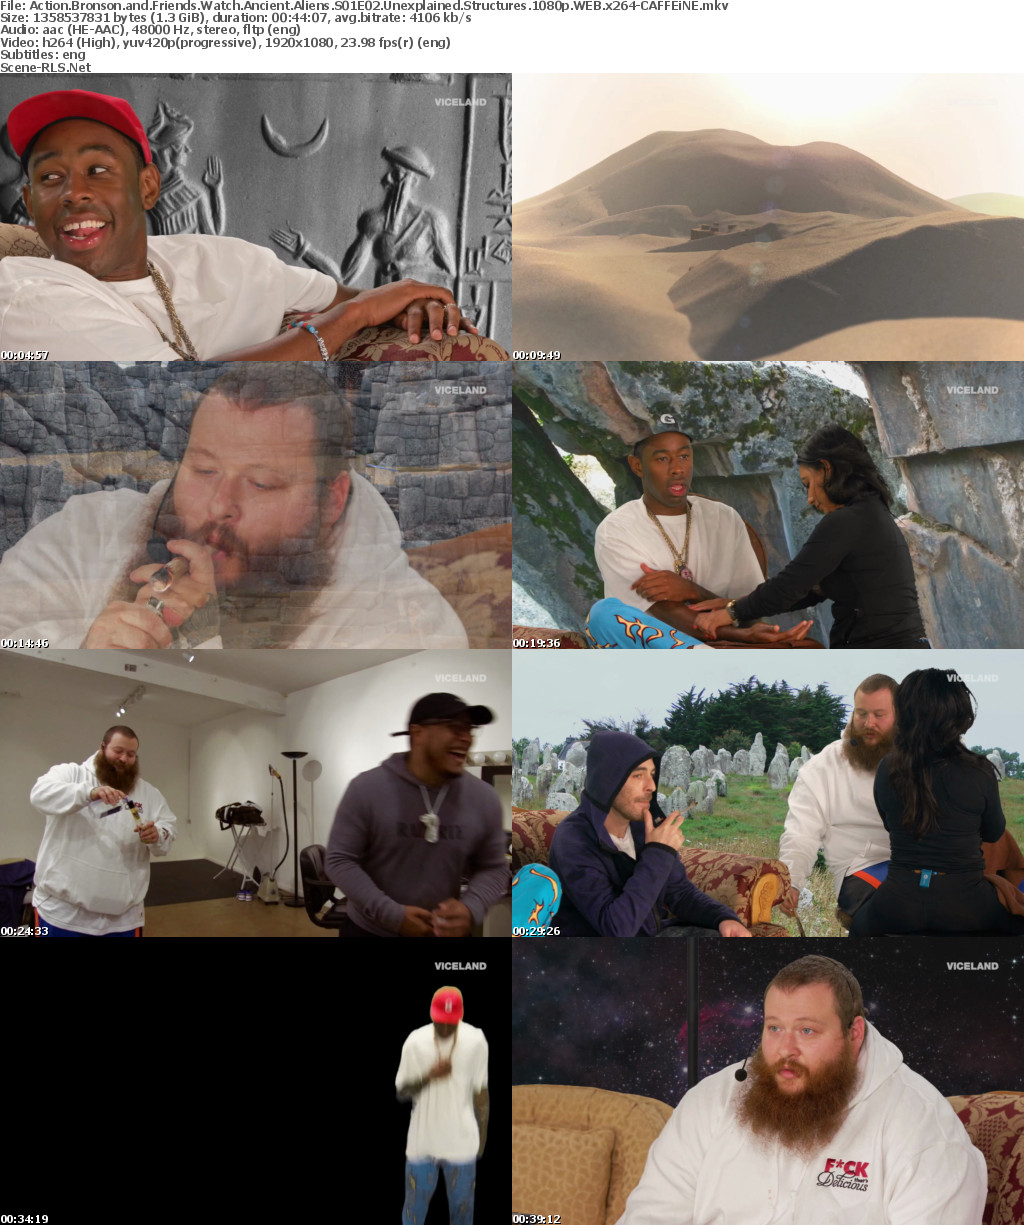 Action Bronson and Friends Watch Ancient Aliens S01E02